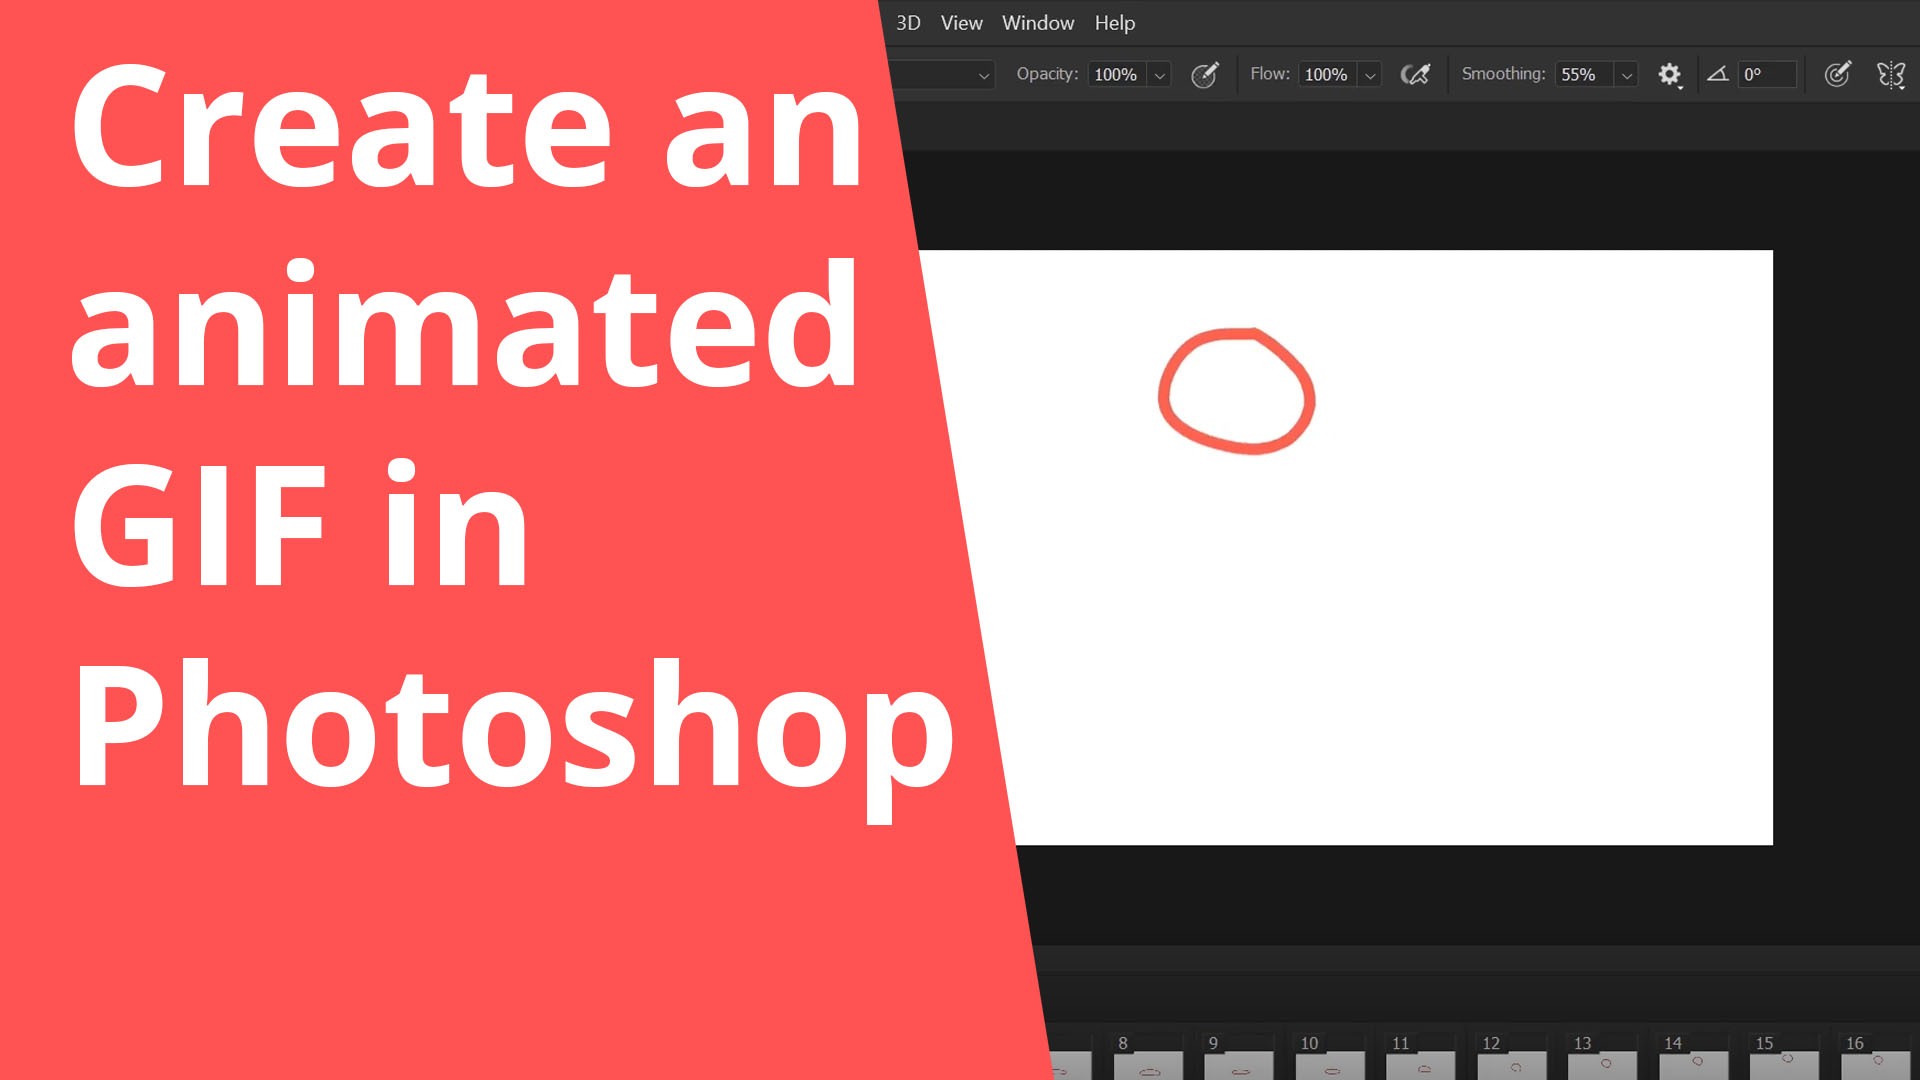 Create an animated GIF in Photoshop